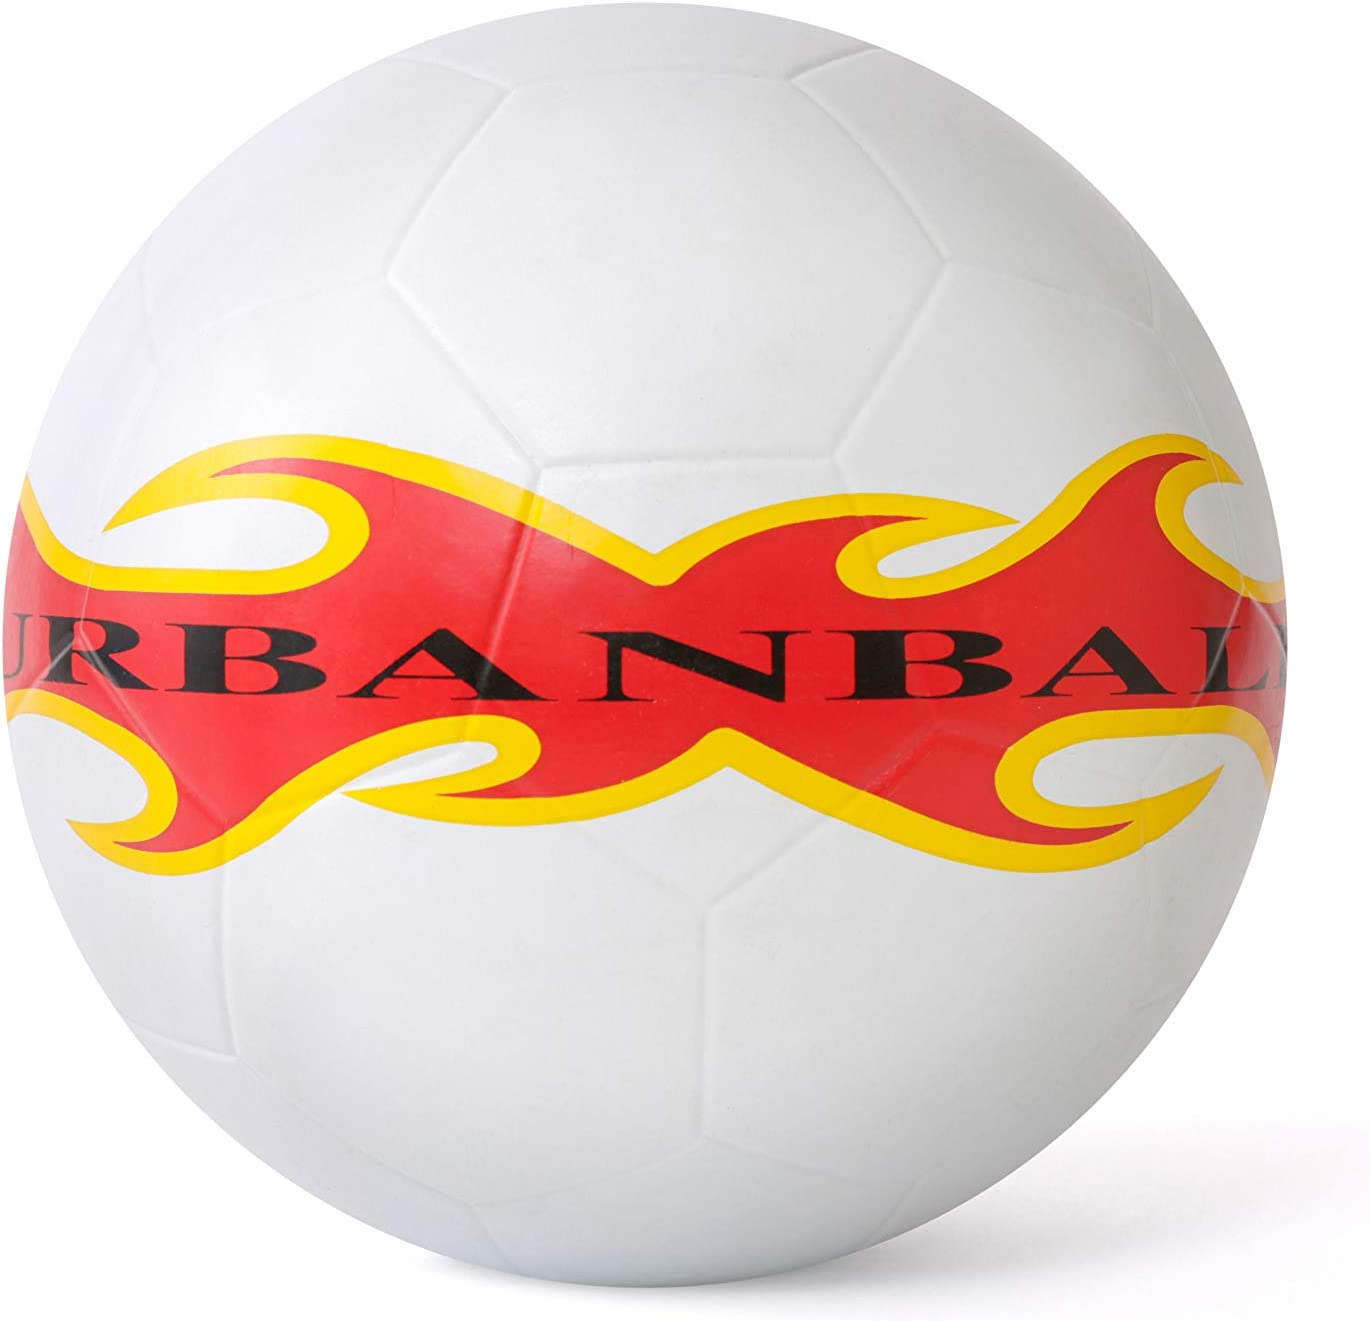 URBANBALL WHITEFIRE - Balón de fútbol freestyle: Amazon.es ...